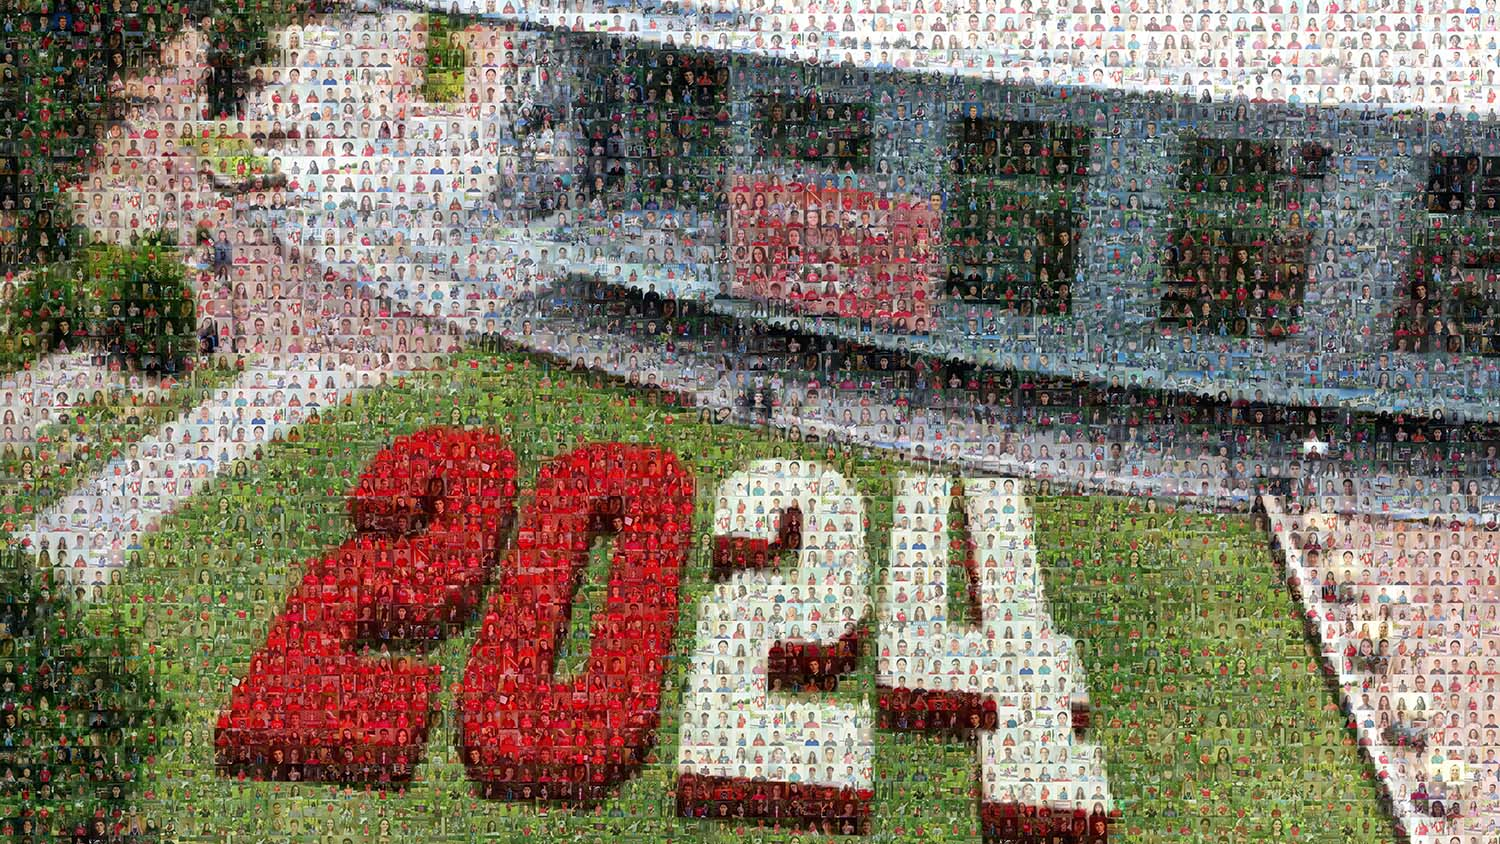 Photos of the members of the class of 2024 make a mosaic of the number 2024 on Stafford Commons in front of Talley Student Union